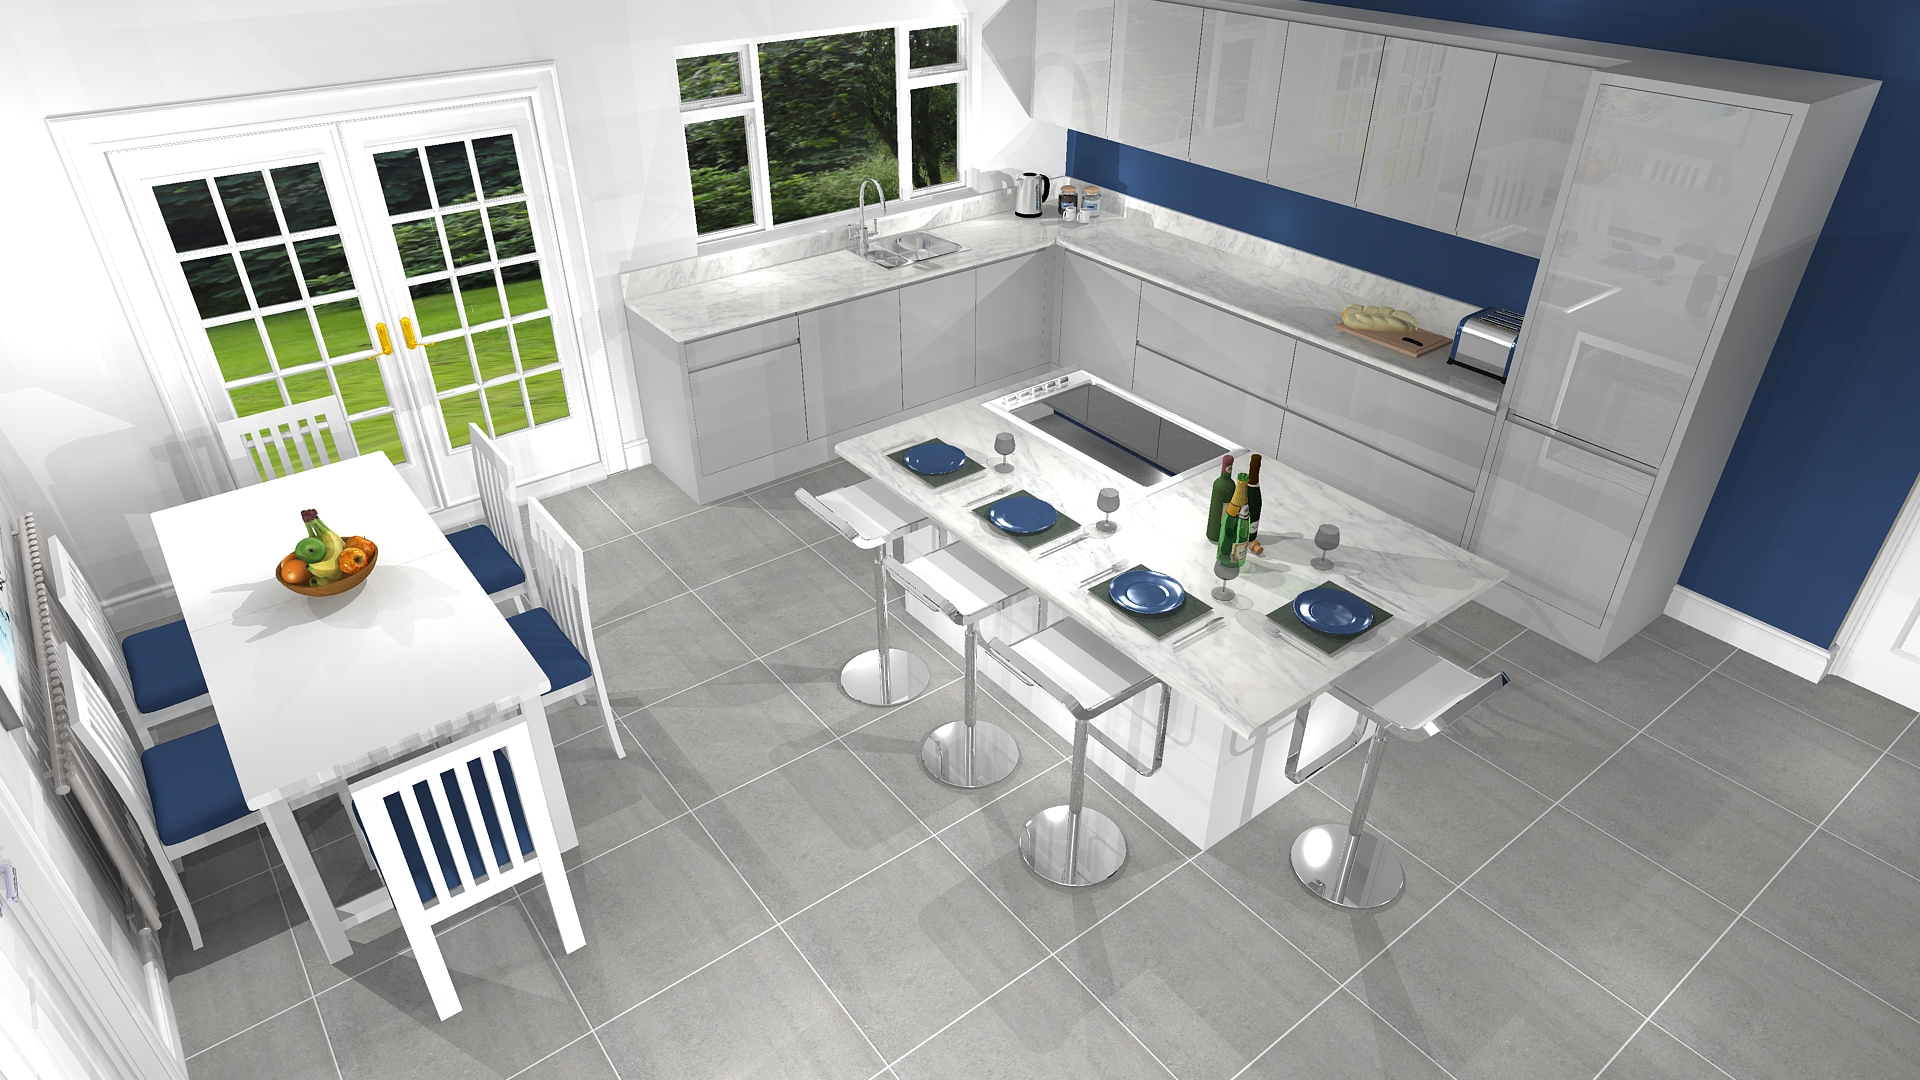 Kitchen portfolio design for Mr & Mrs M